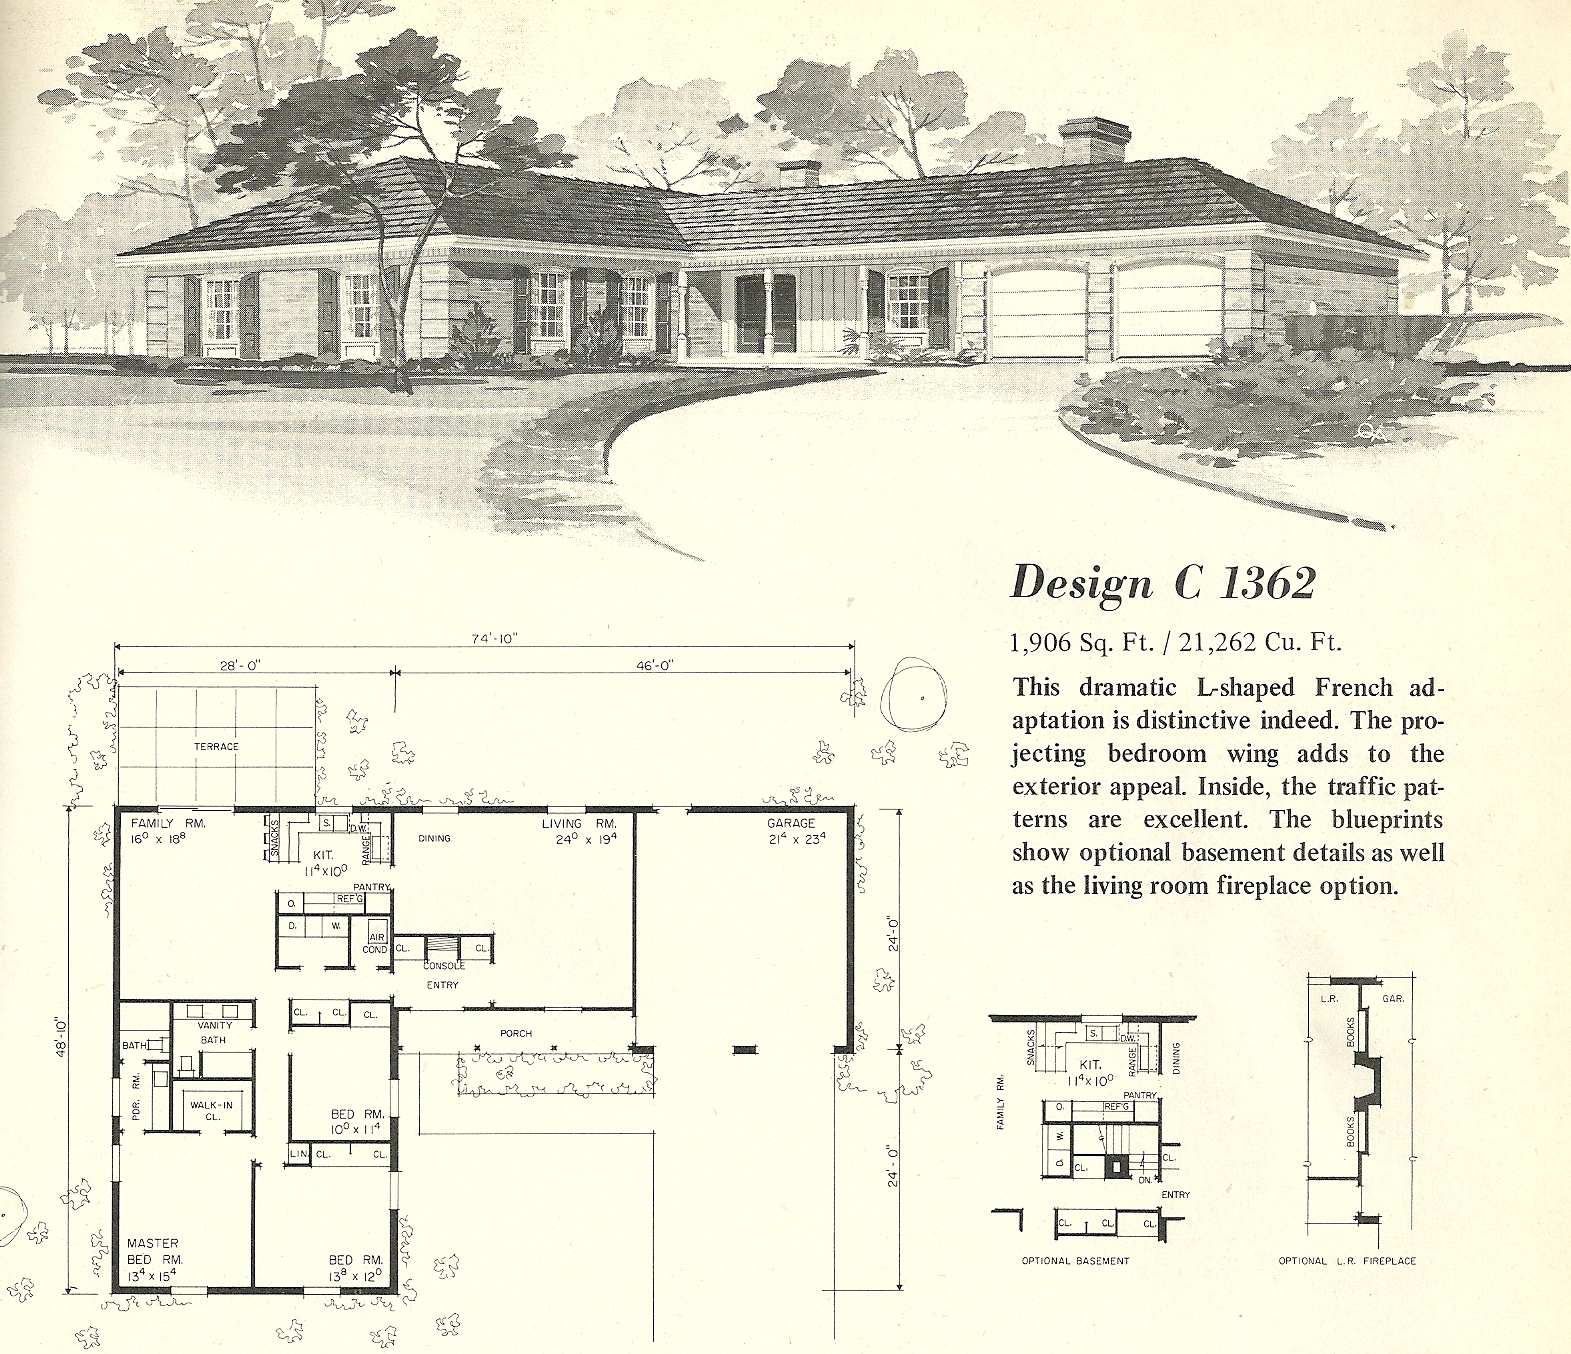 Vintage house plans 1362 antique alter ego for T shaped house design